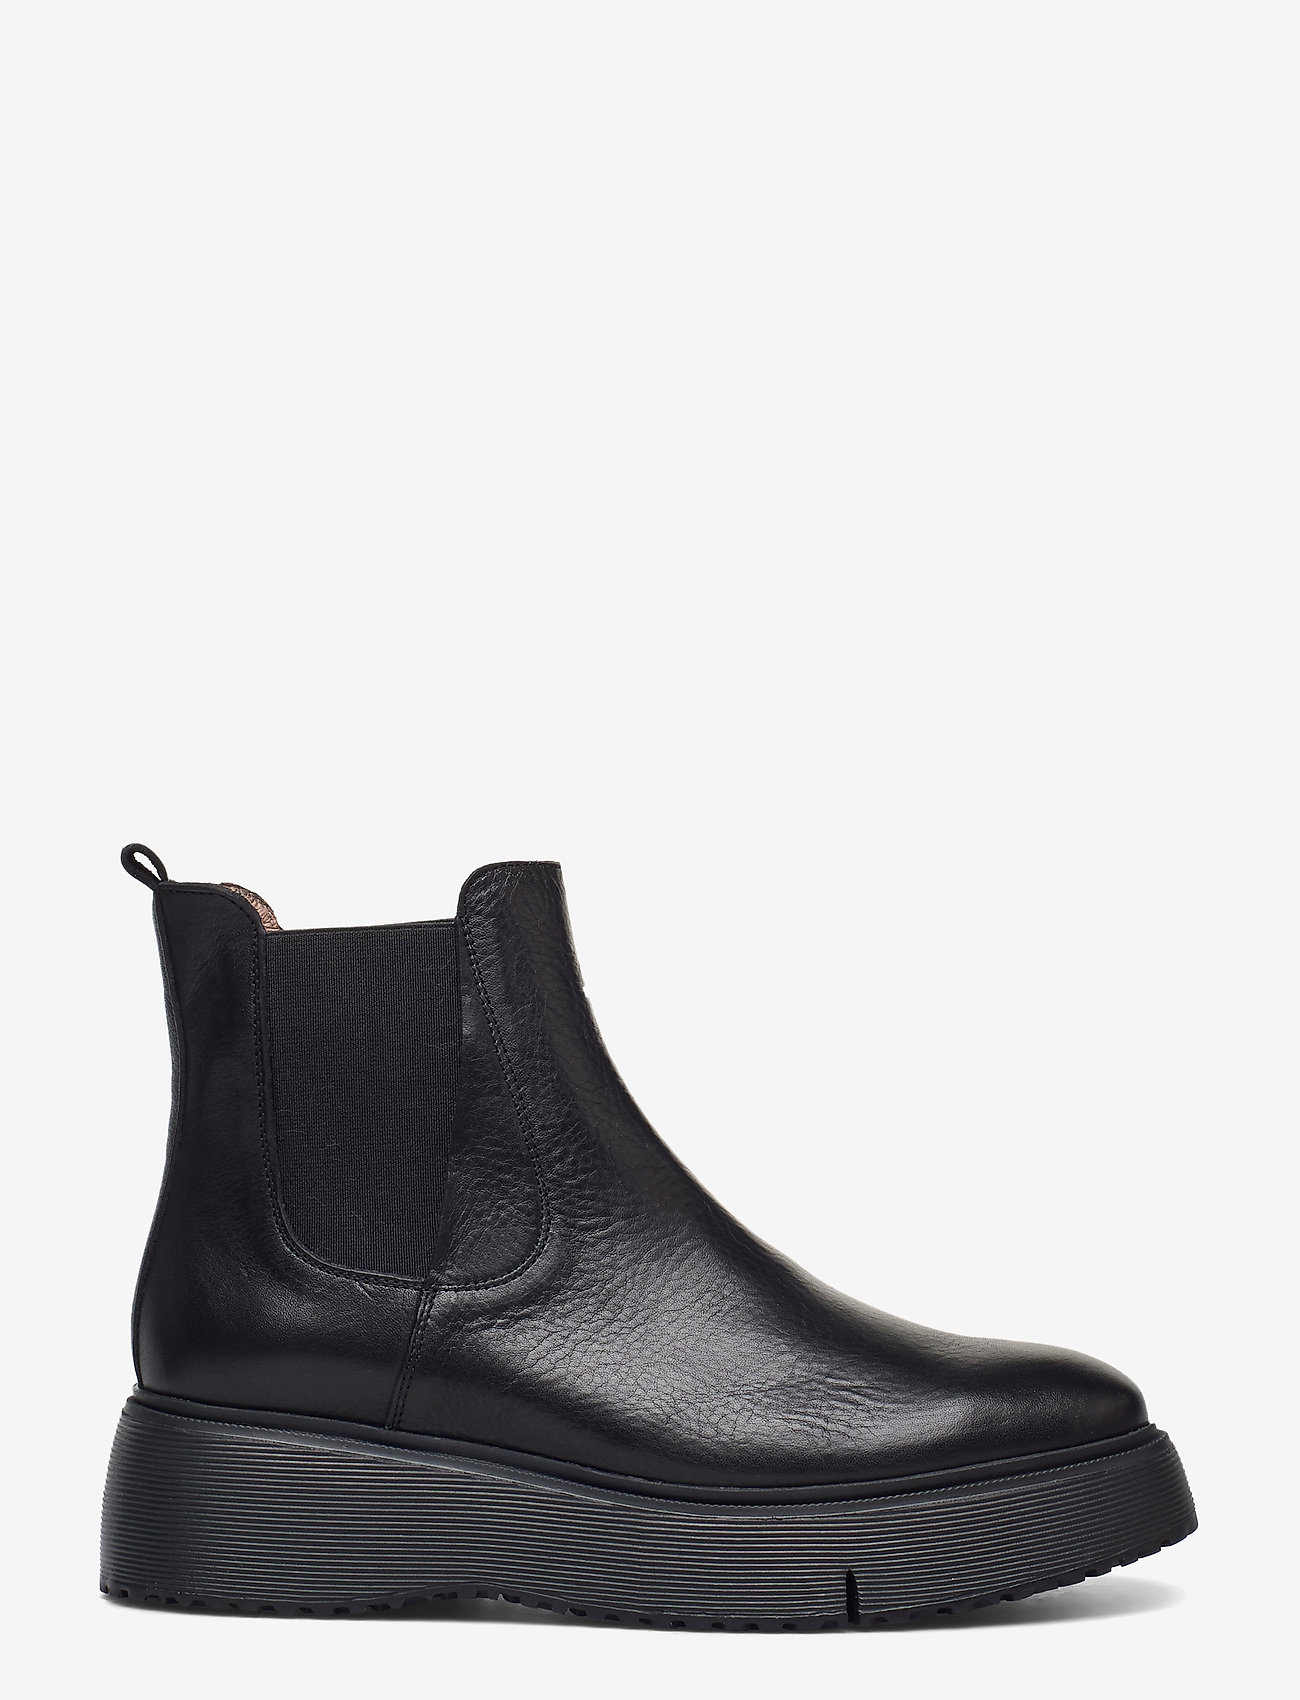 Wonders - A-9332 - chelsea boots - black - 1